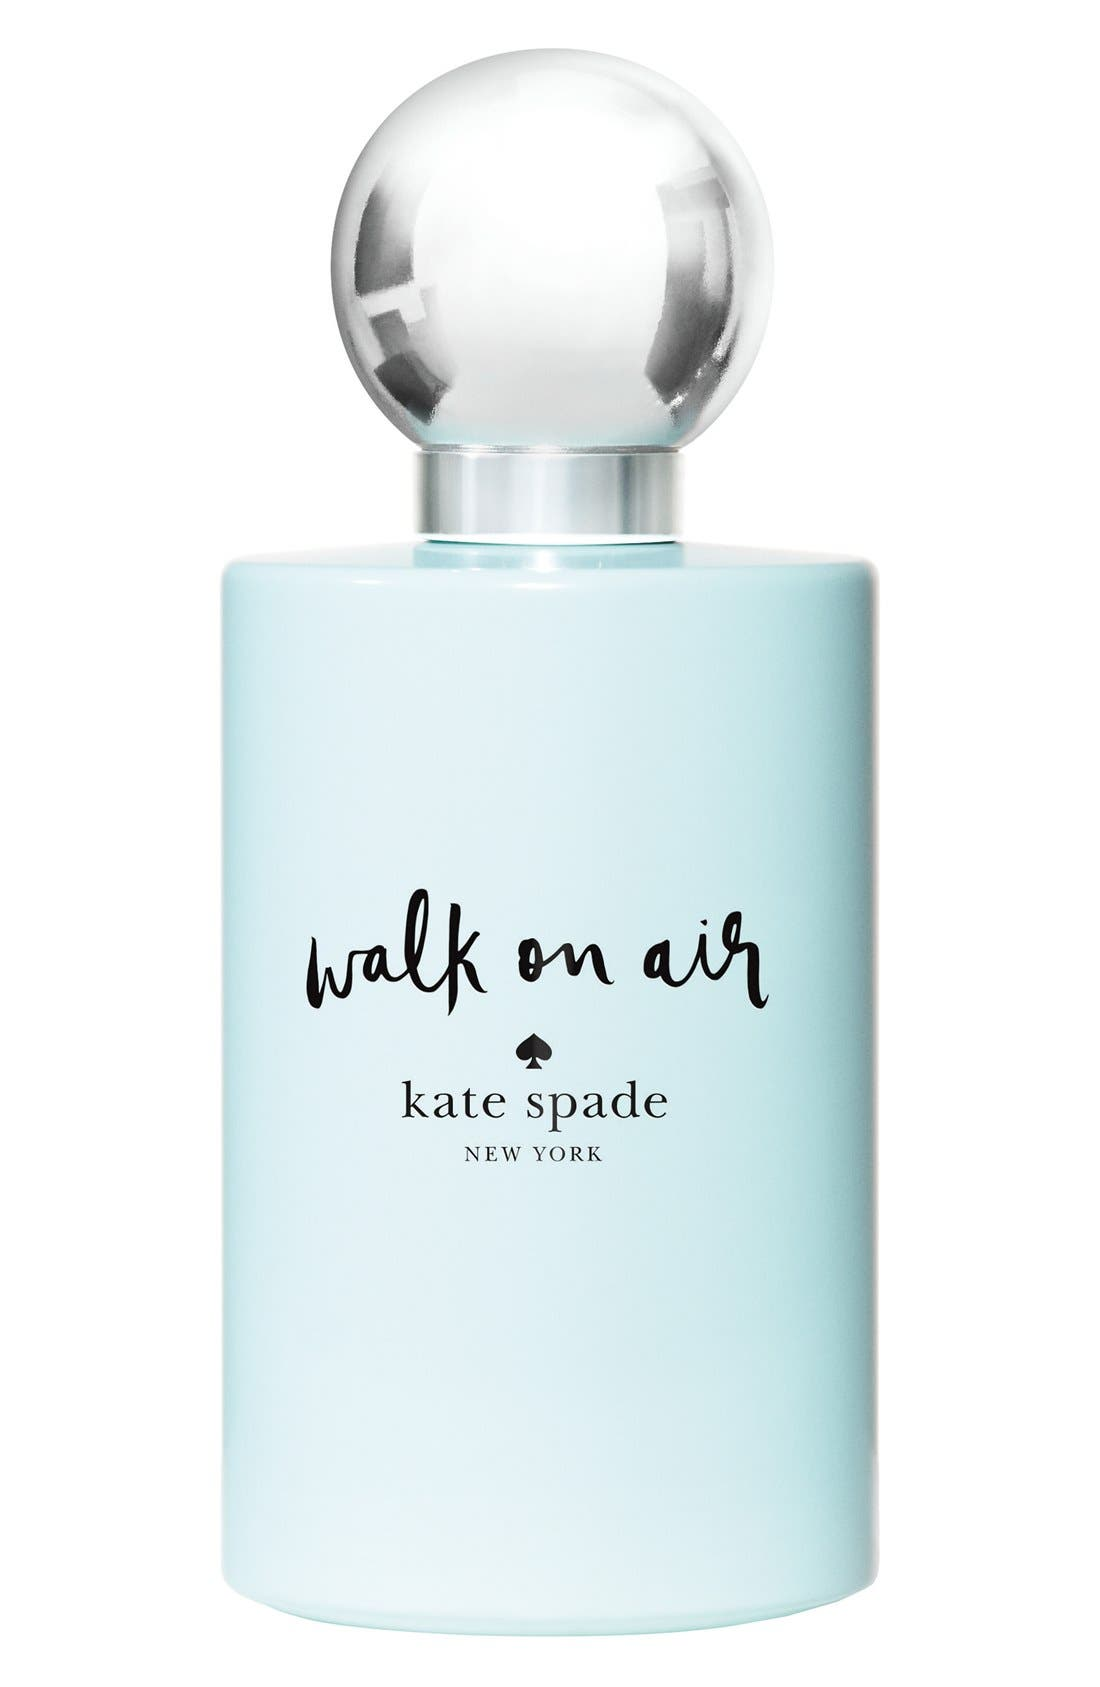 kate spade new york 'walk on air' body lotion